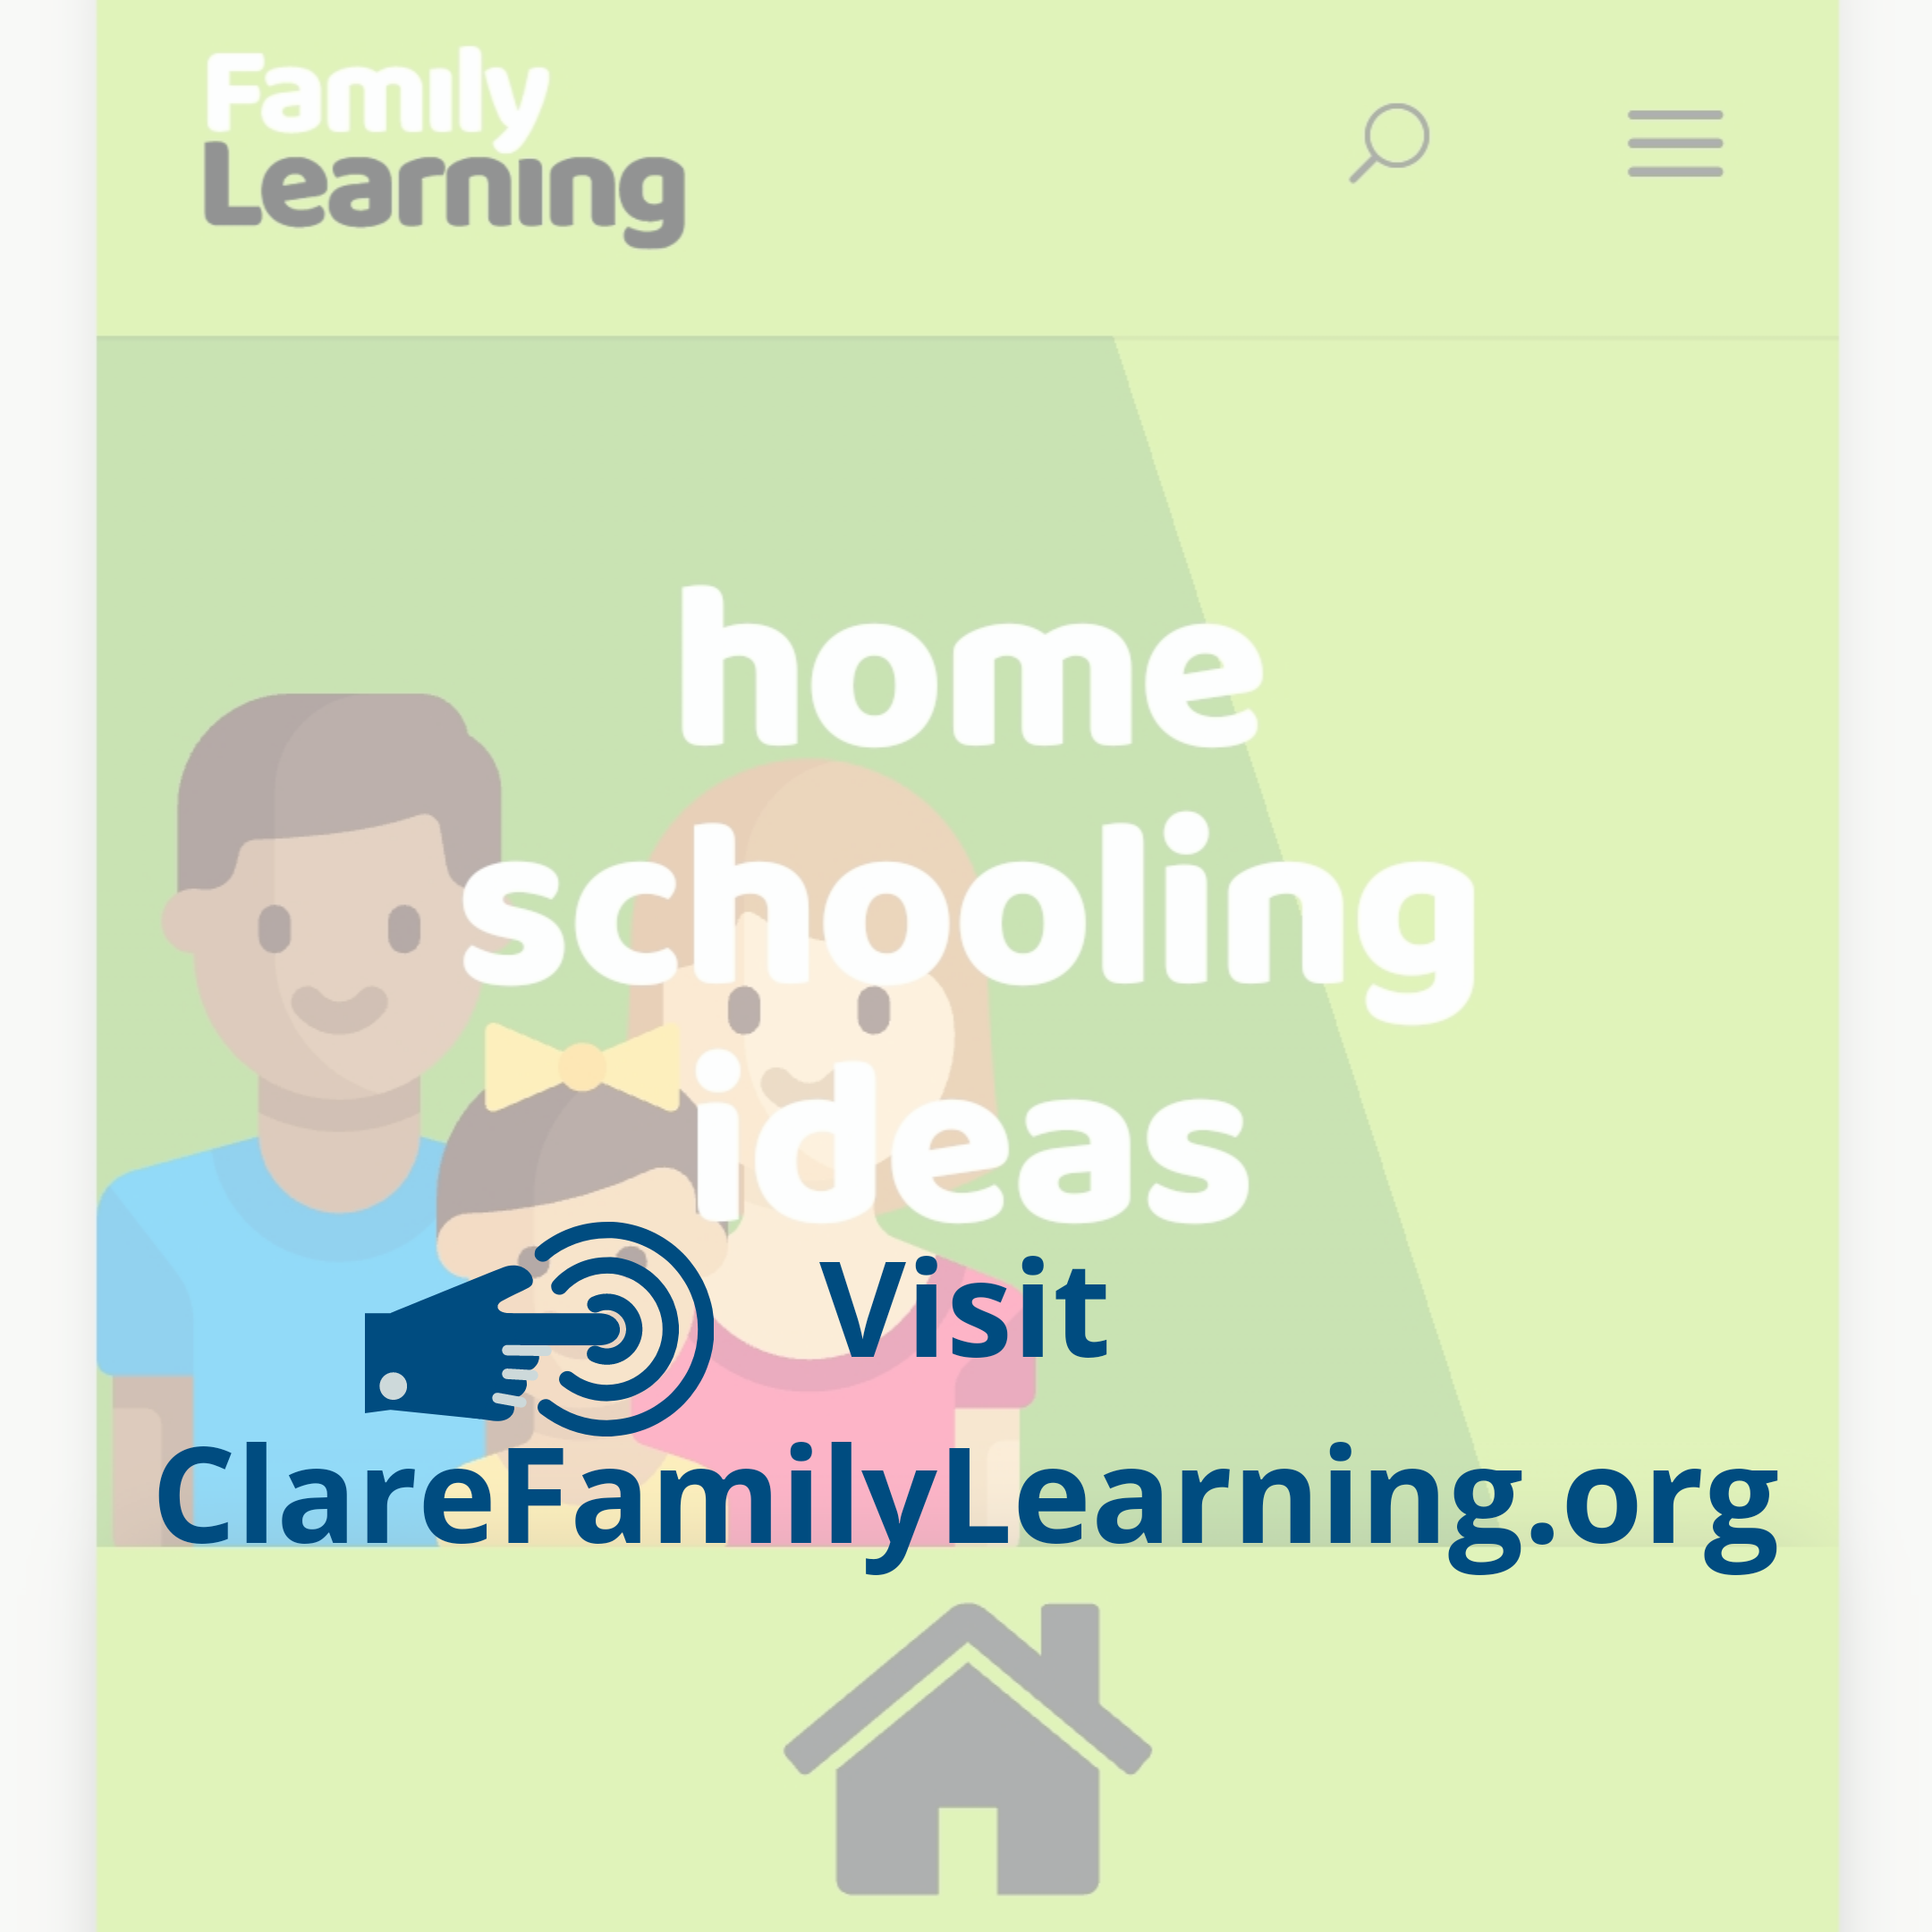 Clare Family Learning Home Schooling Ideas